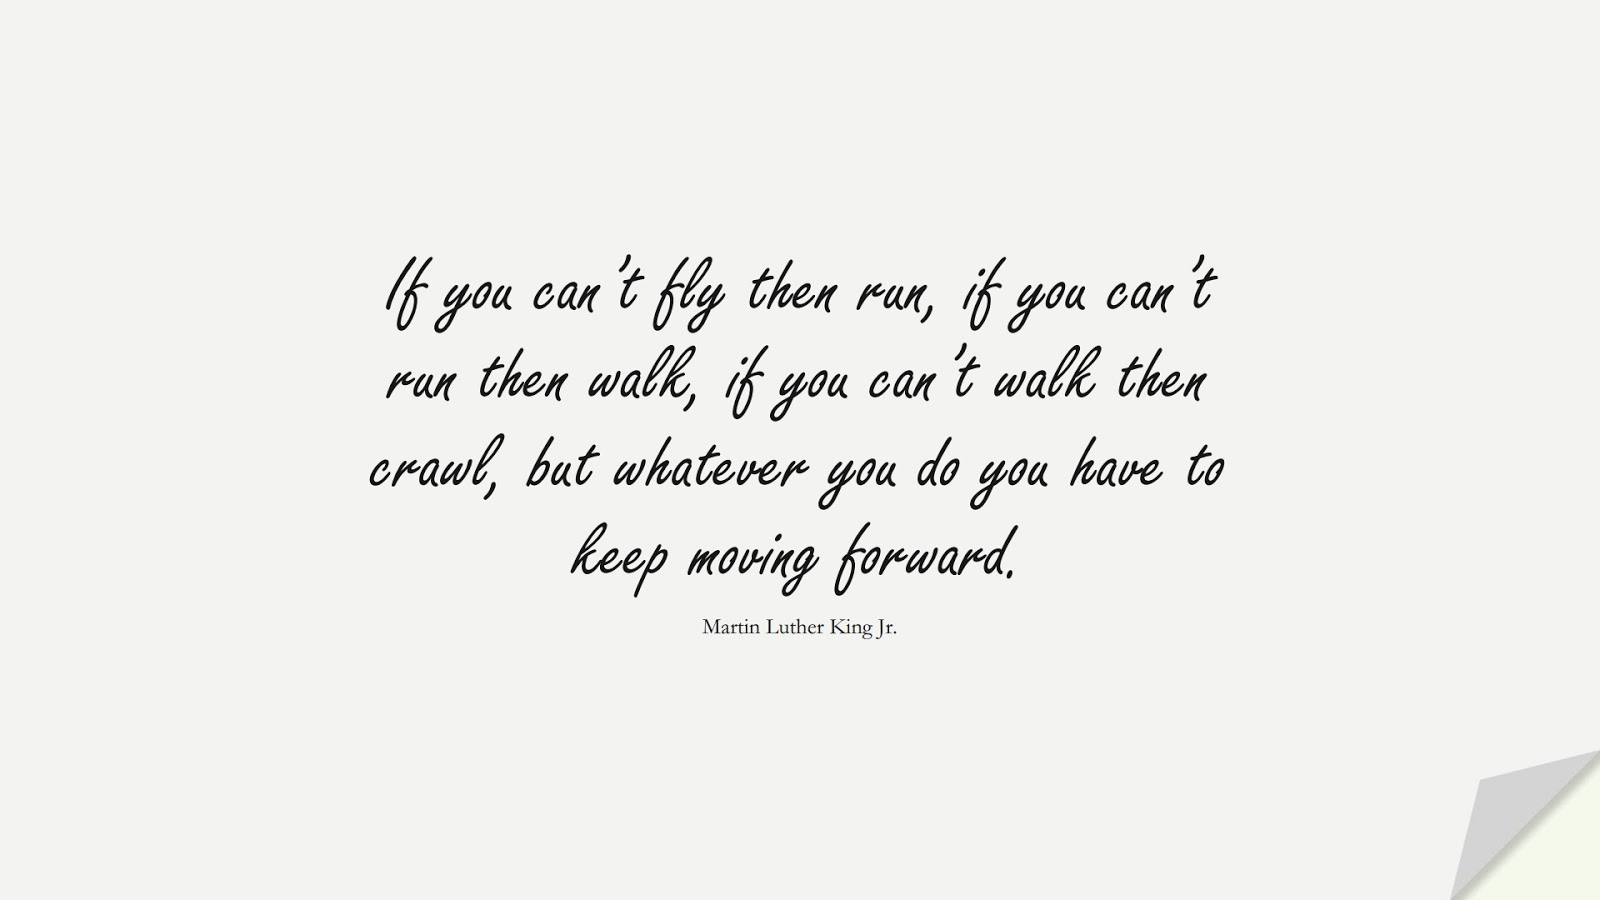 If you can't fly then run, if you can't run then walk, if you can't walk then crawl, but whatever you do you have to keep moving forward. (Martin Luther King Jr.);  #MartinLutherKingJrQuotes